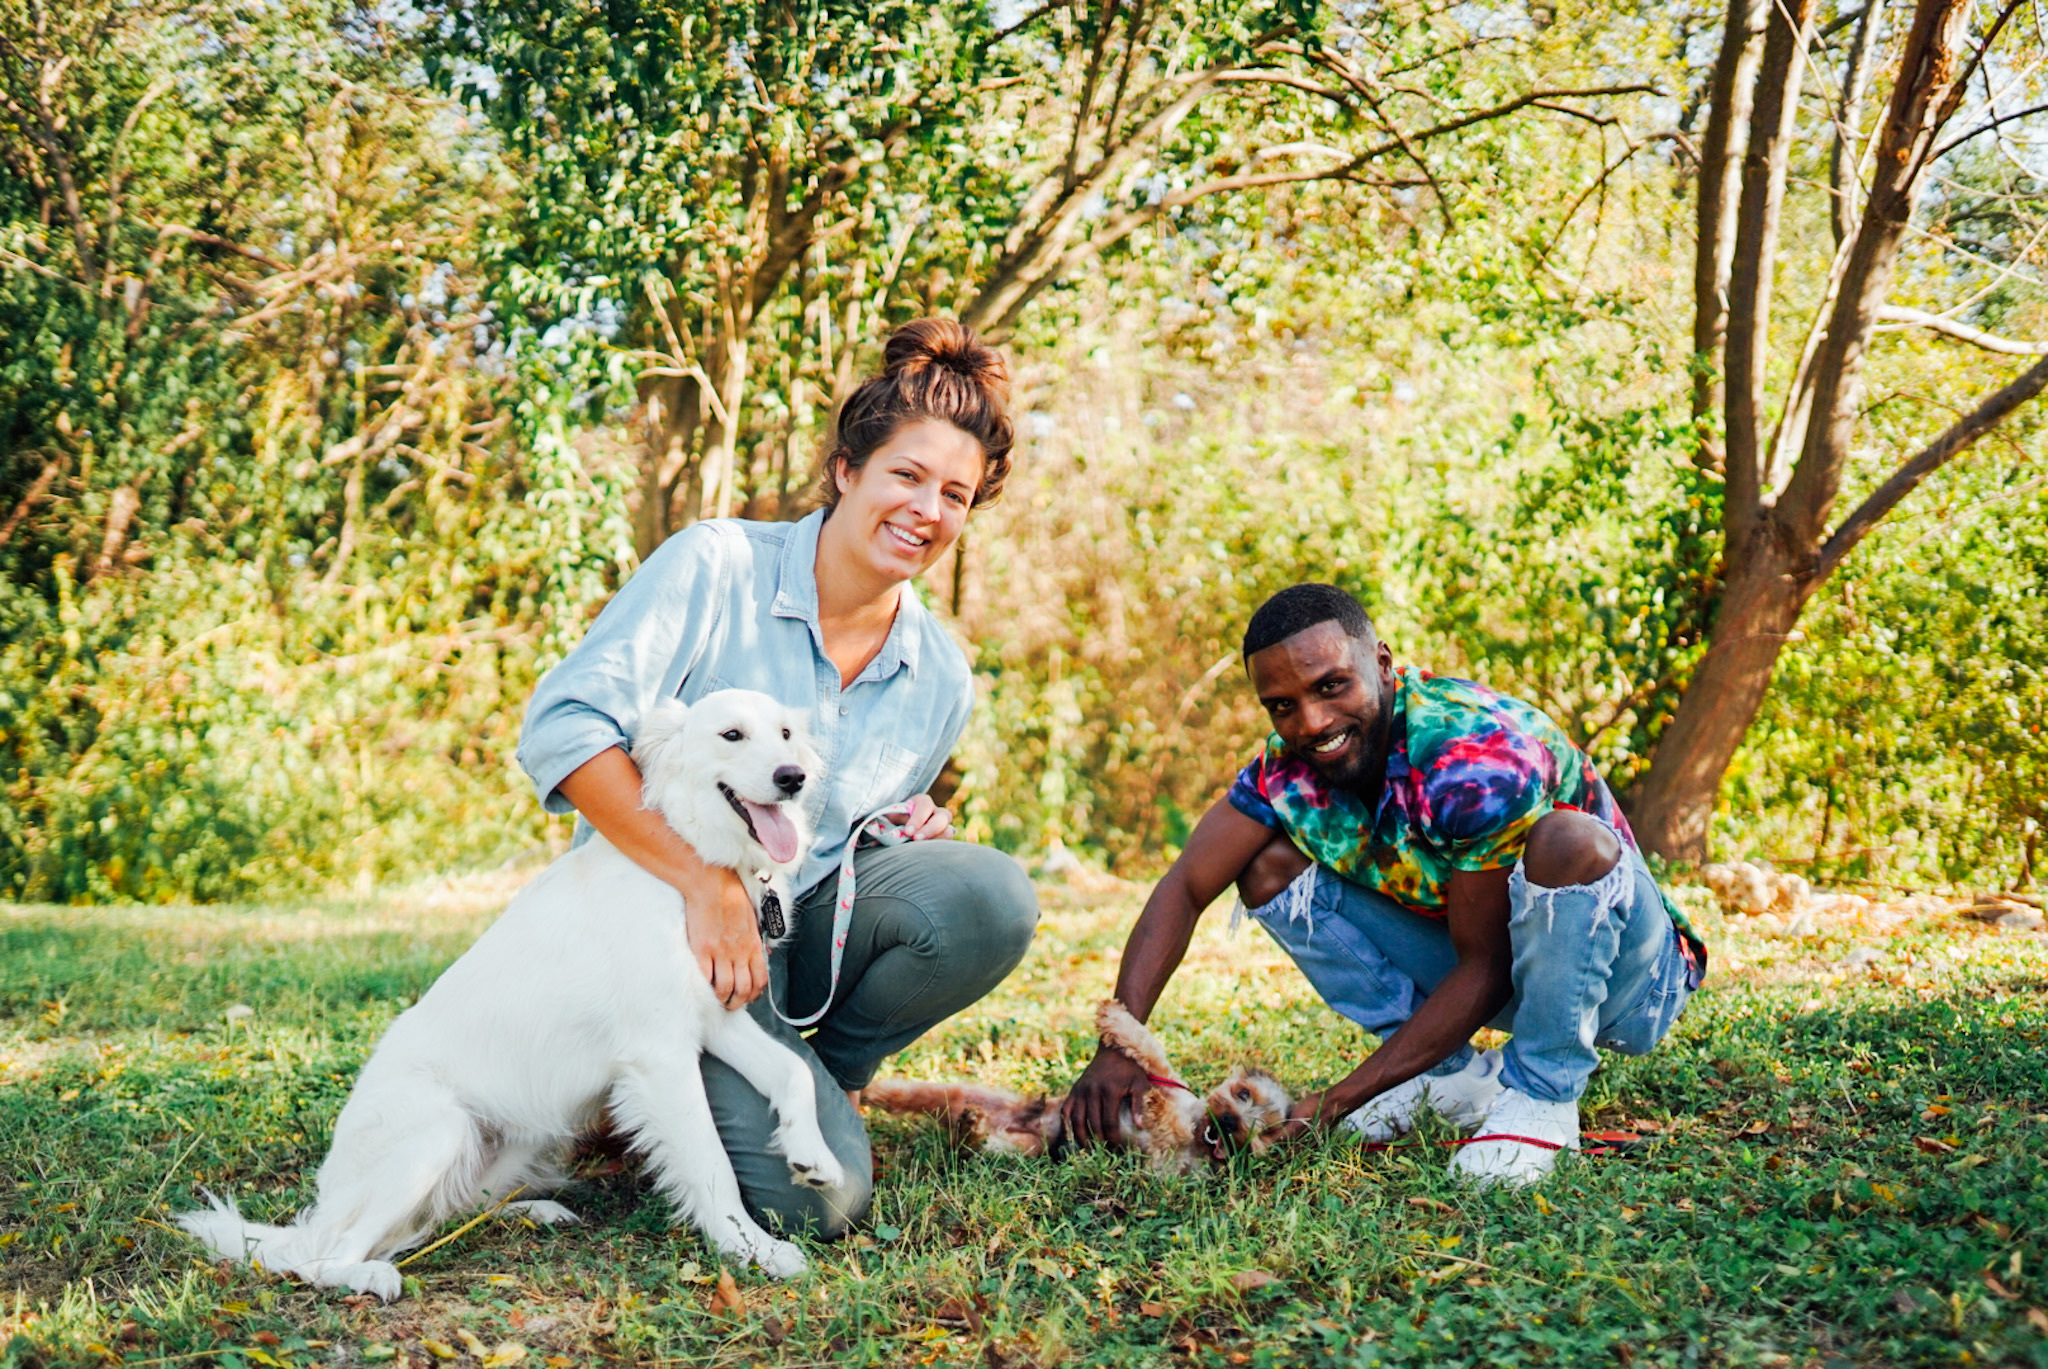 Kati Luedecke and Lamar Bowman in a park with a dog.